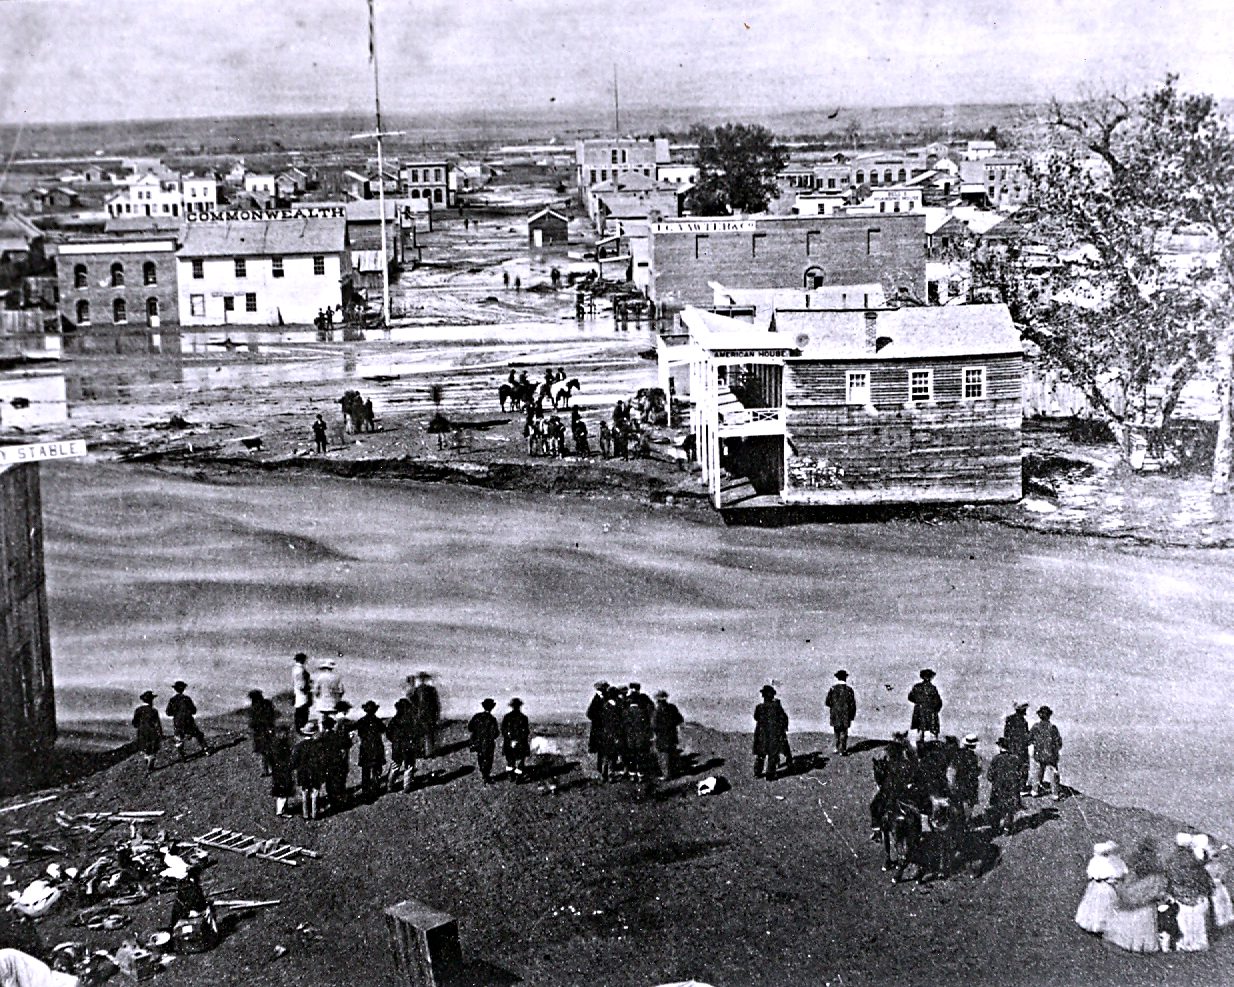 Photo: Great Flood of 1864